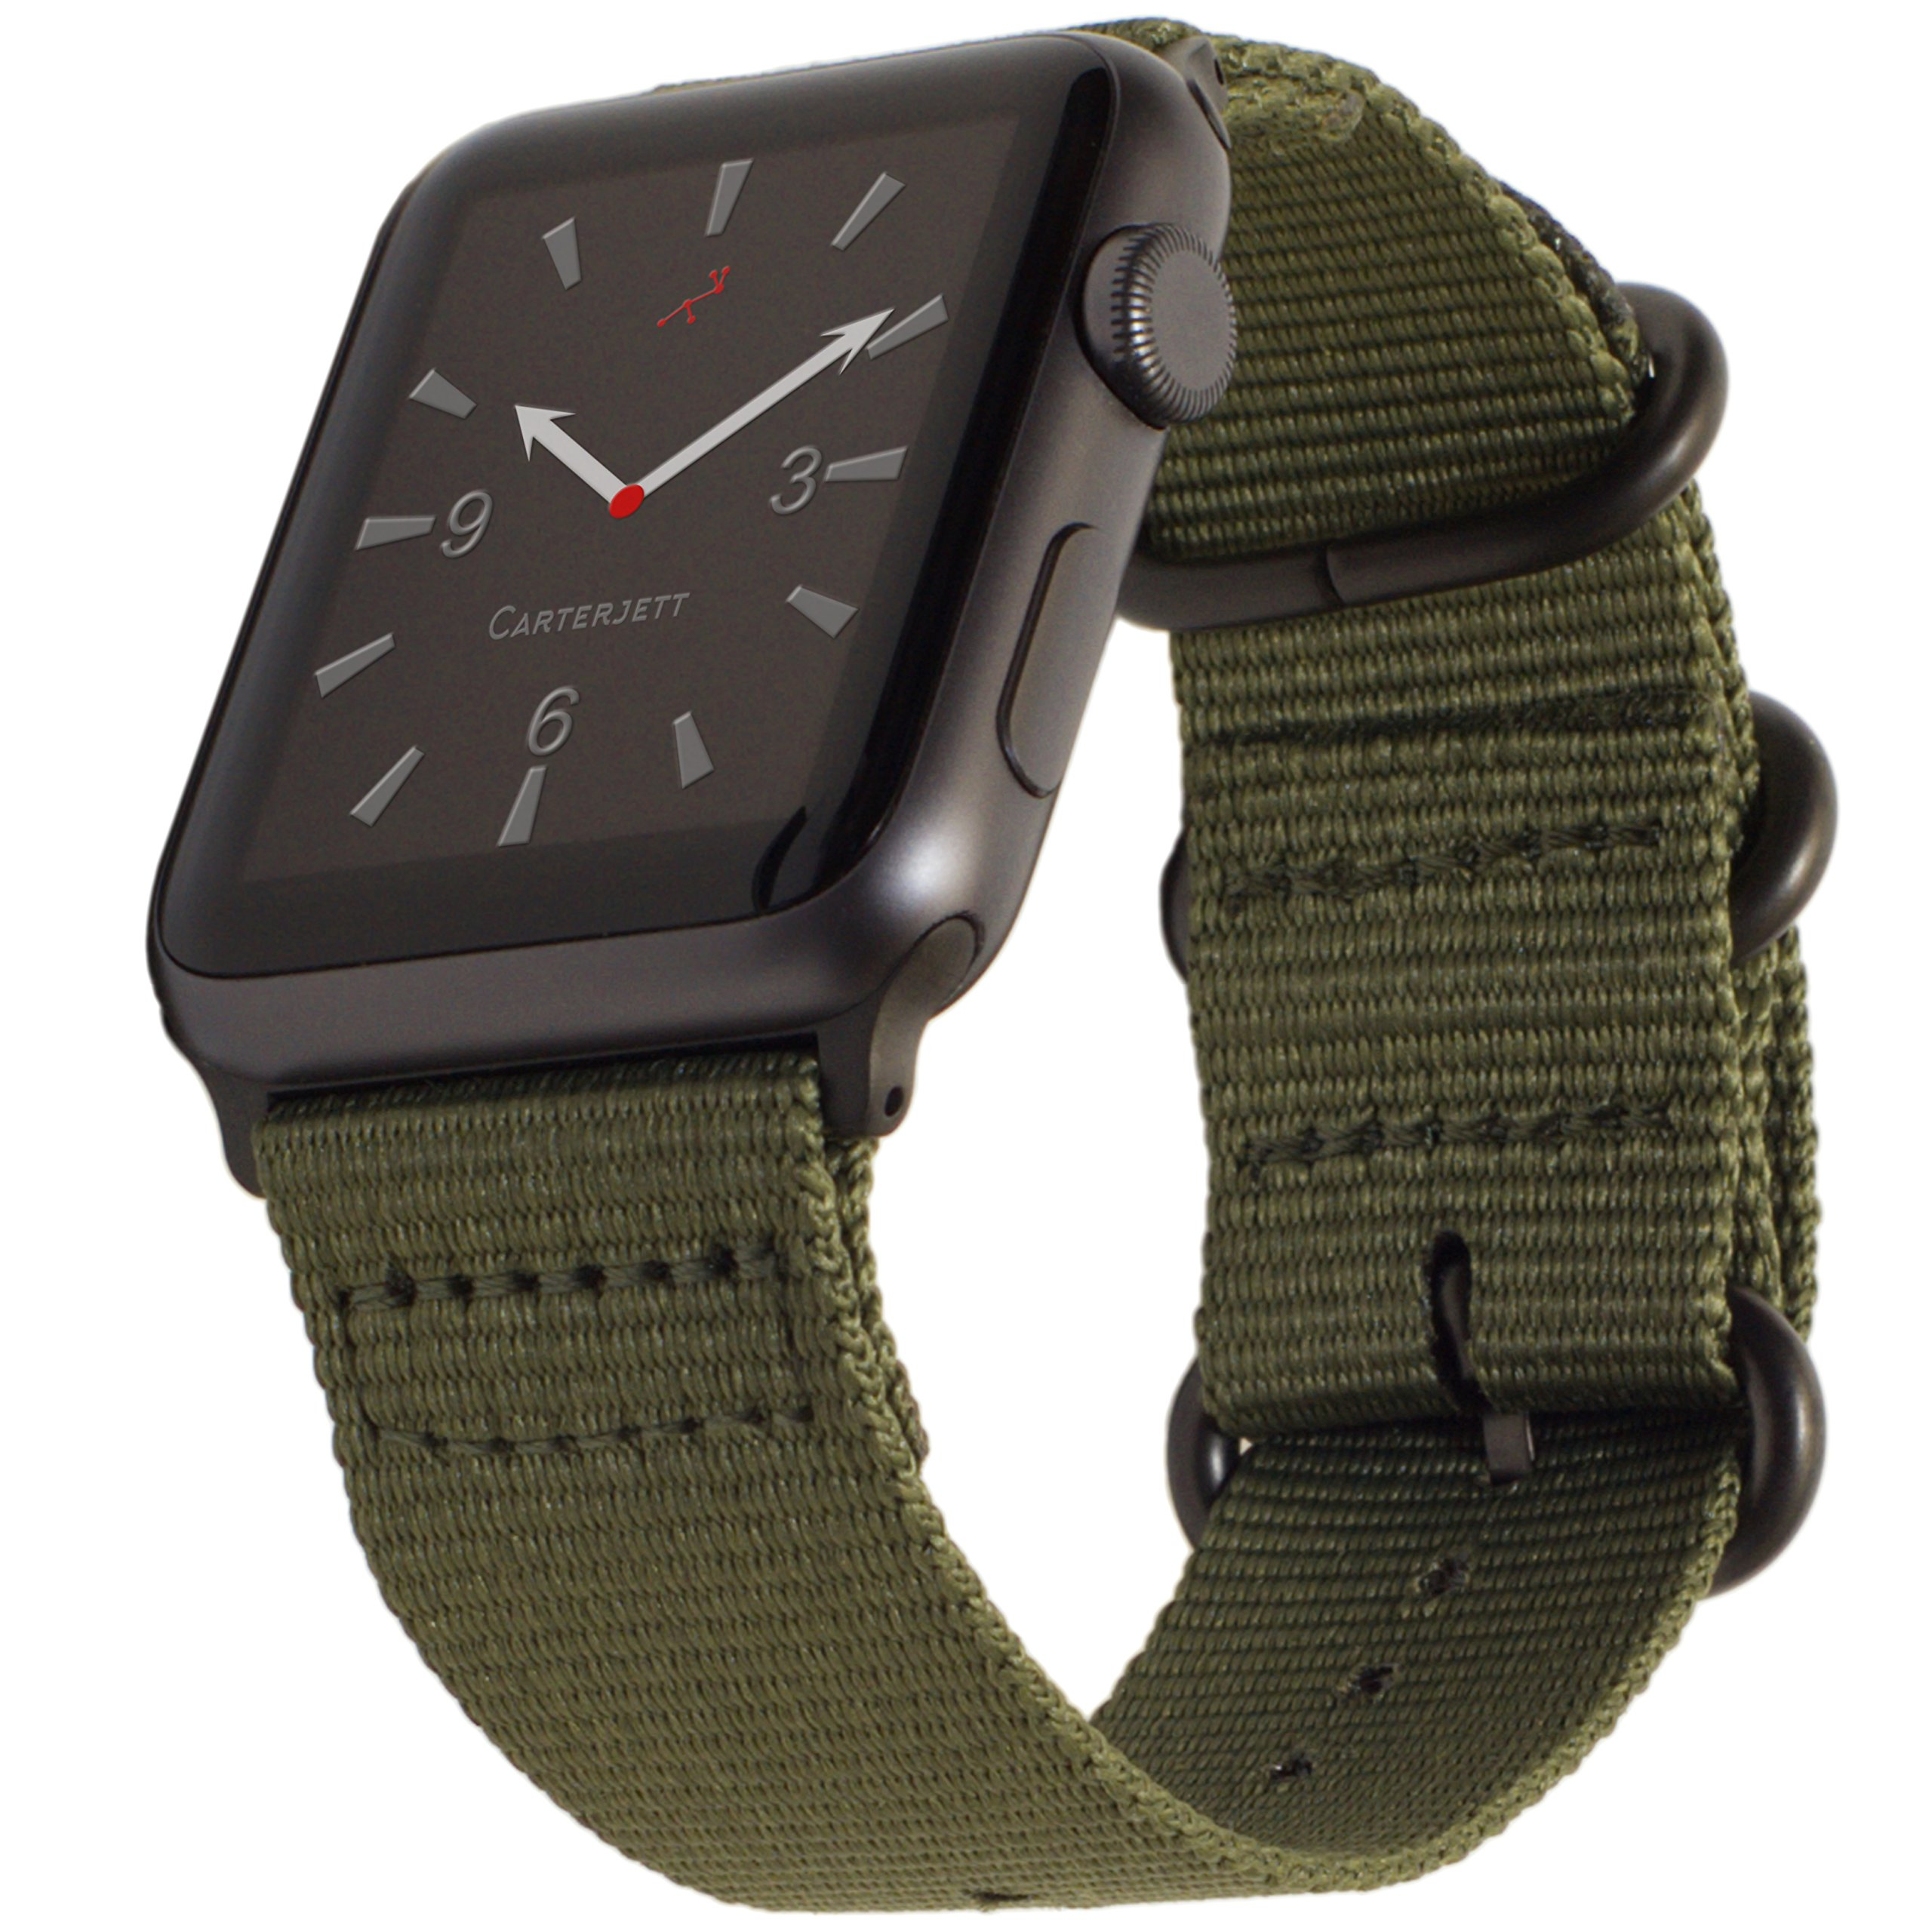 Carterjett Compatible with Apple Watch Band 42mm 44mm Nylon Olive iWatch Bands Replacement Strap Durable Dark Gray Adapters NATO Buckle for Series 4 Series 3 2 1 (42 44 S/M/L Army Green) by Carterjett